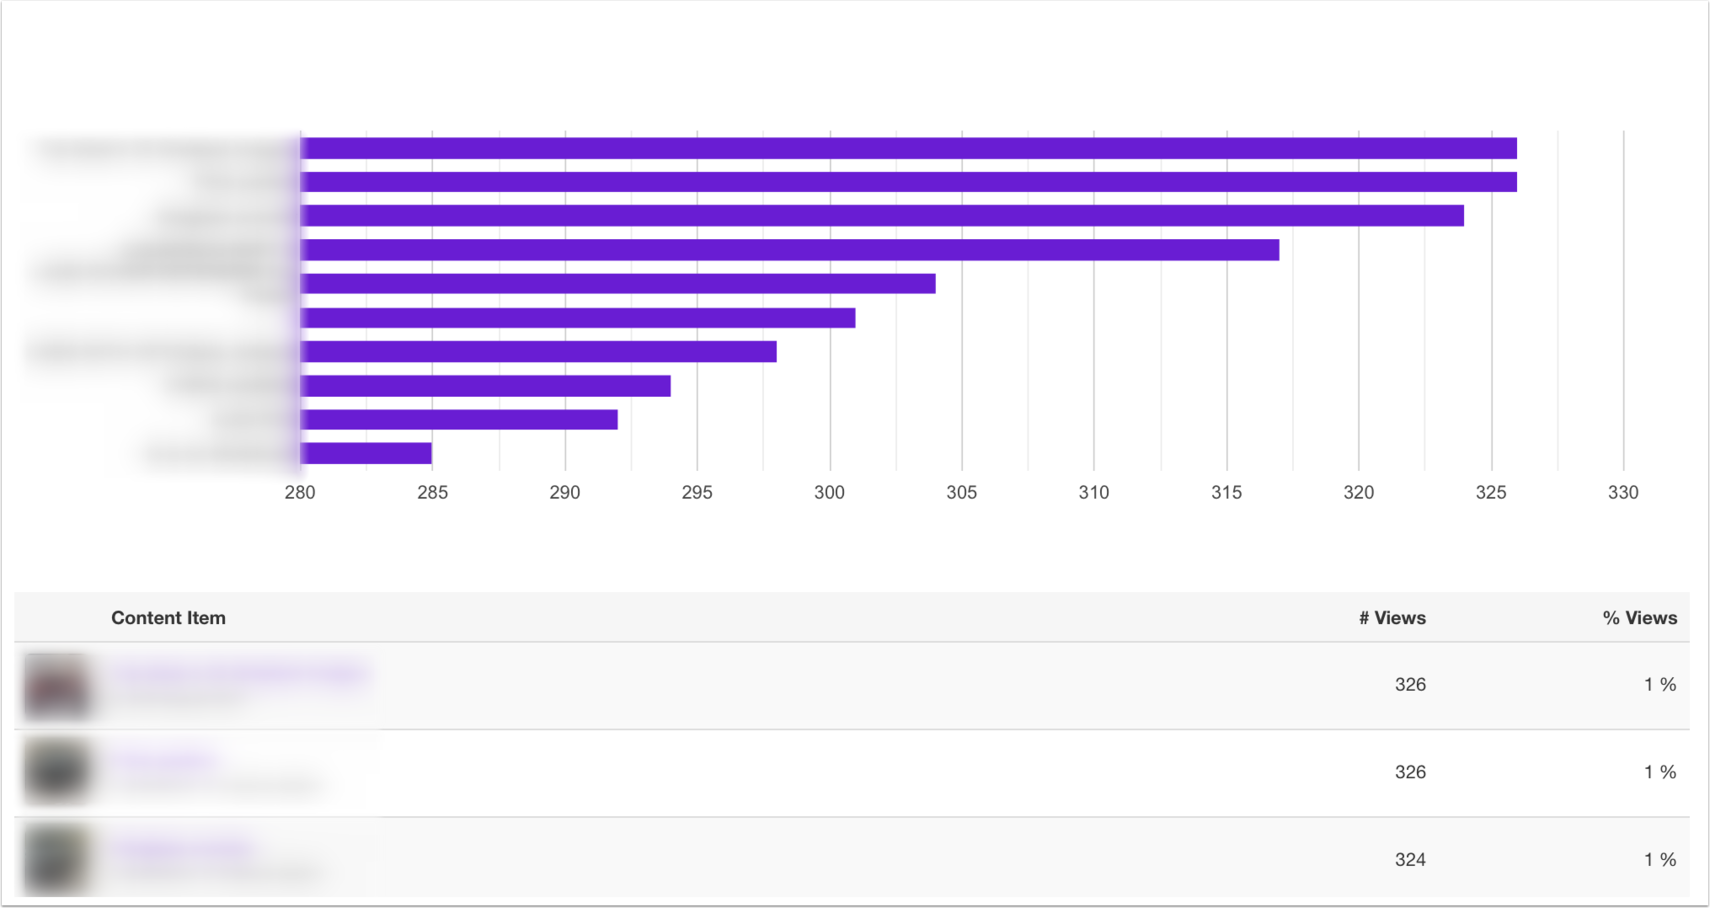 Daily Content Item views (article-based)